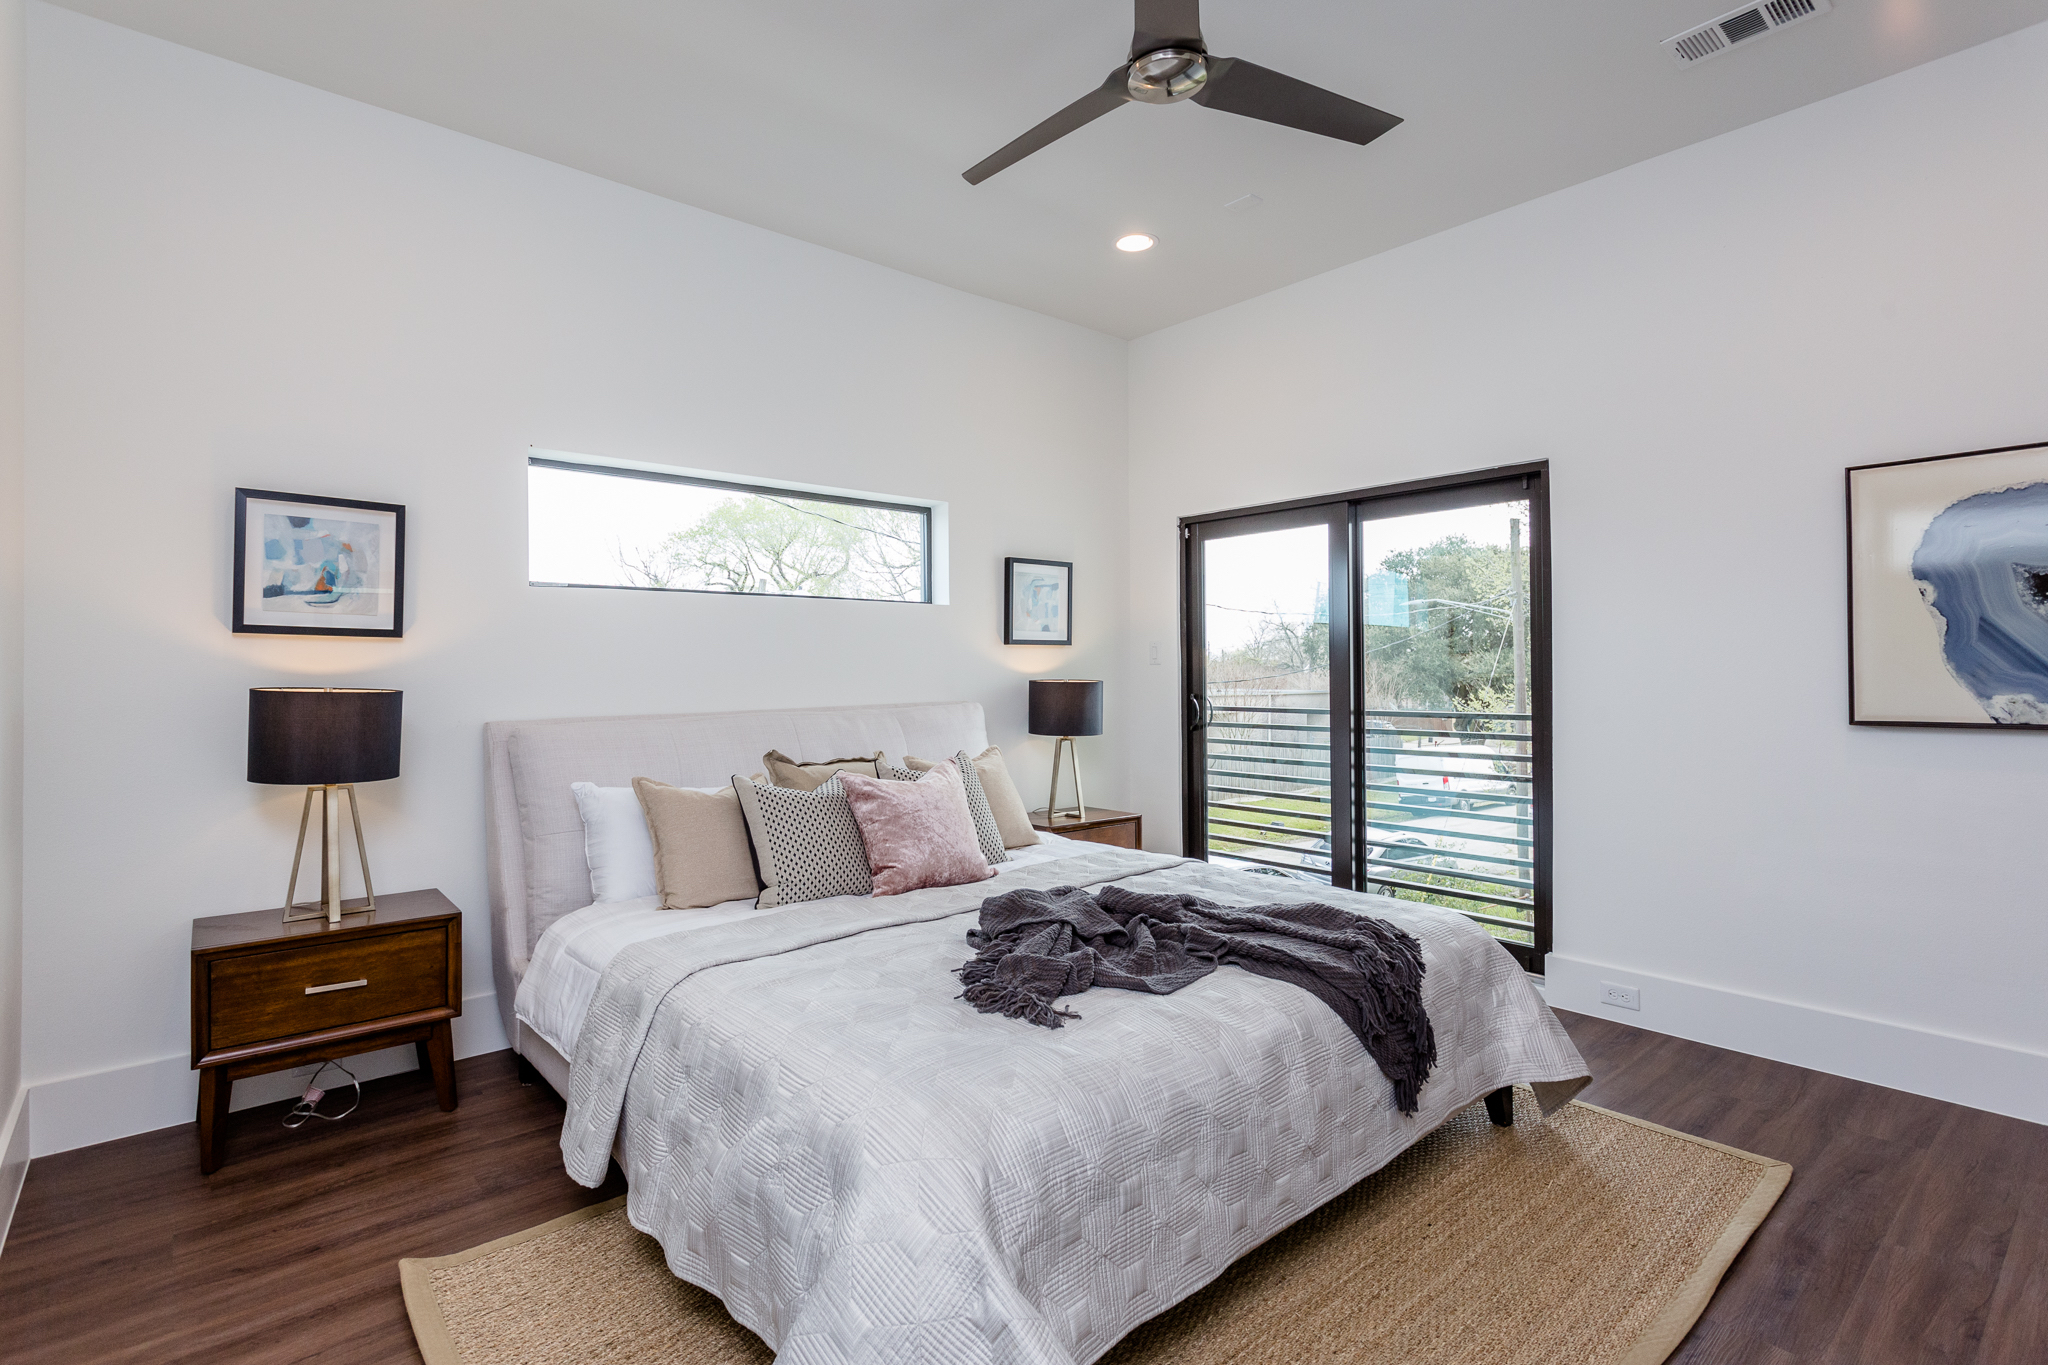 It's the sense of proportion that gives the bedroom its five-star hotel quality. You'll appreciate abundant space to fit a king bed and the Juliet balcony overlooking the generous side yard.